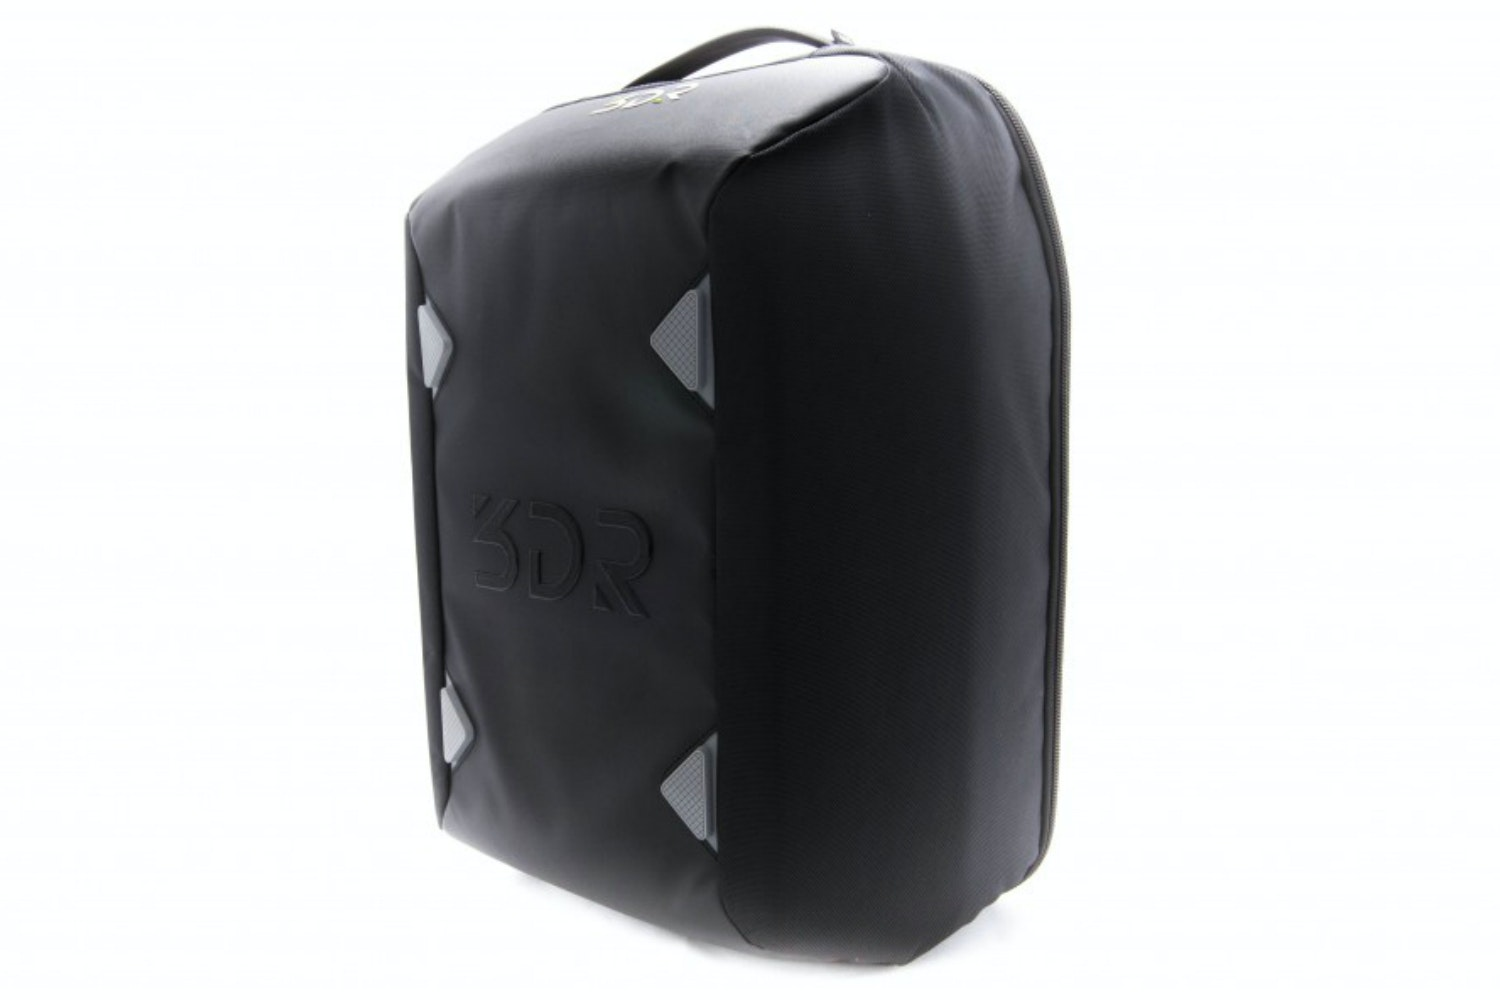 The Smart Drone Protective backpack